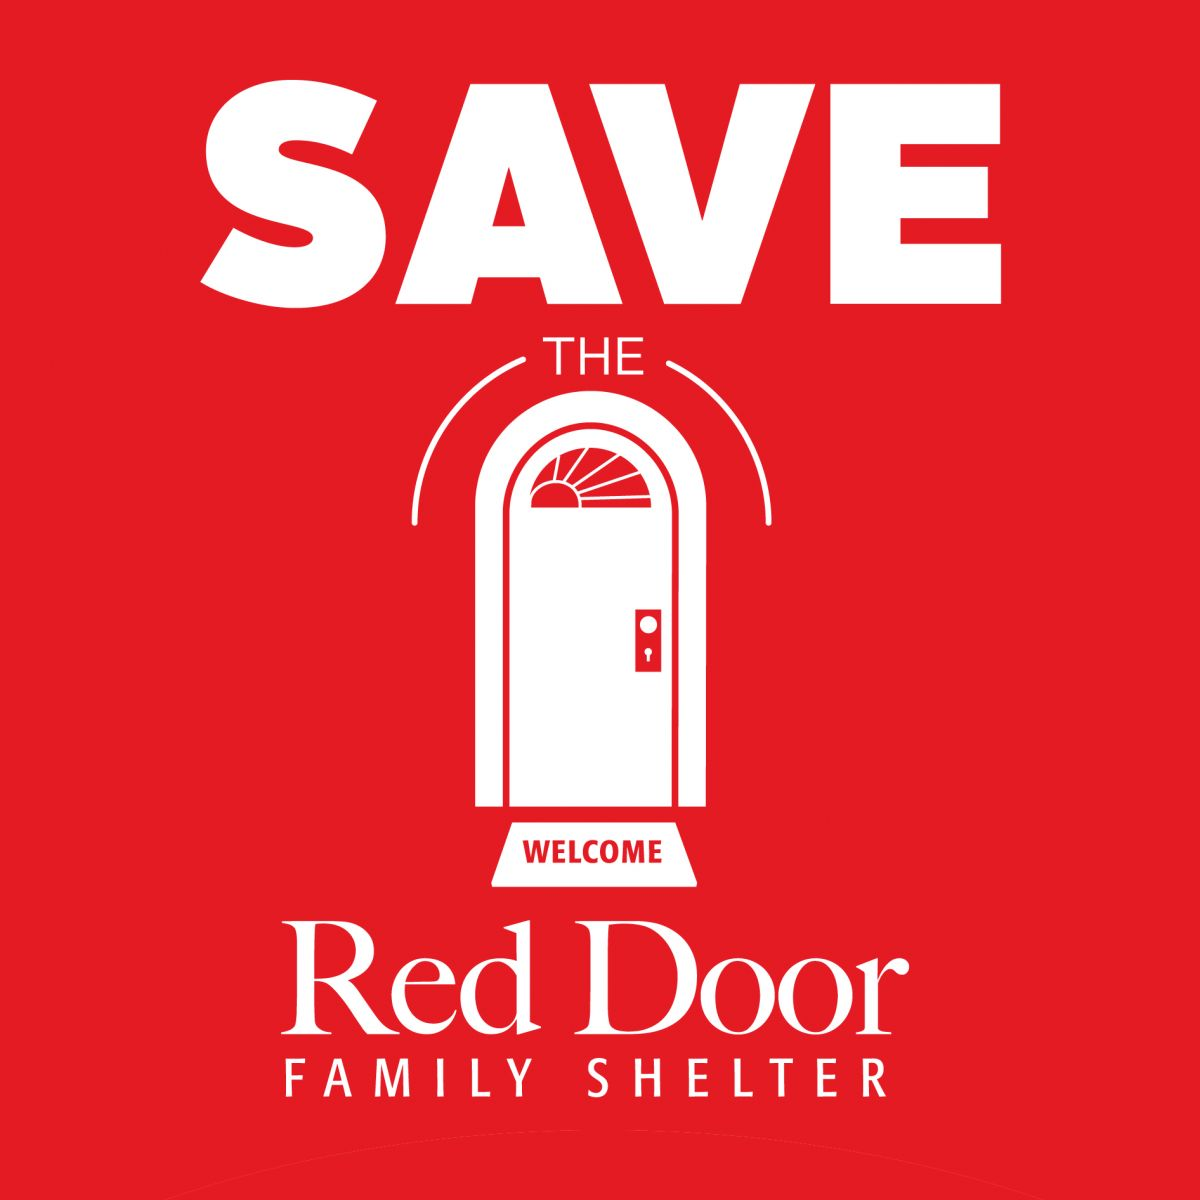 Save The Red Door Campaign Red Door Family Shelter